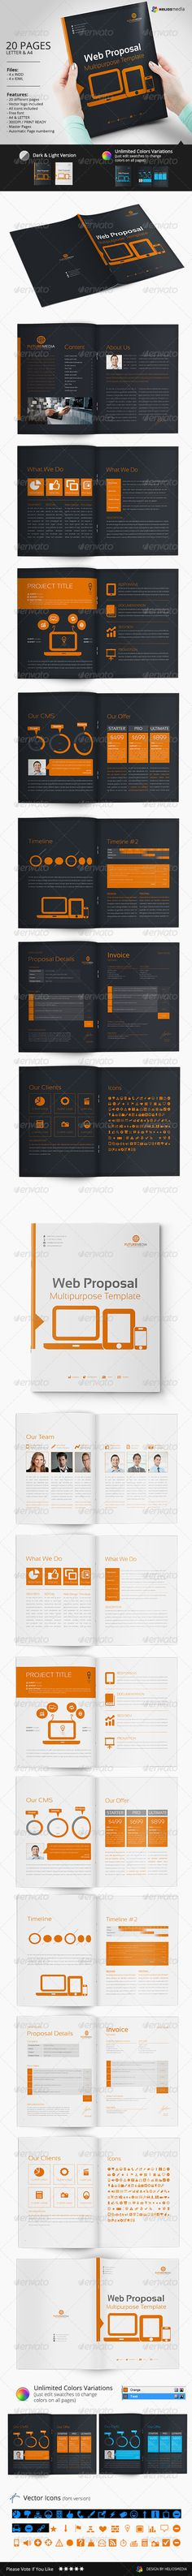 Web Proposal Template — InDesign INDD #form graphic #project proposal •…